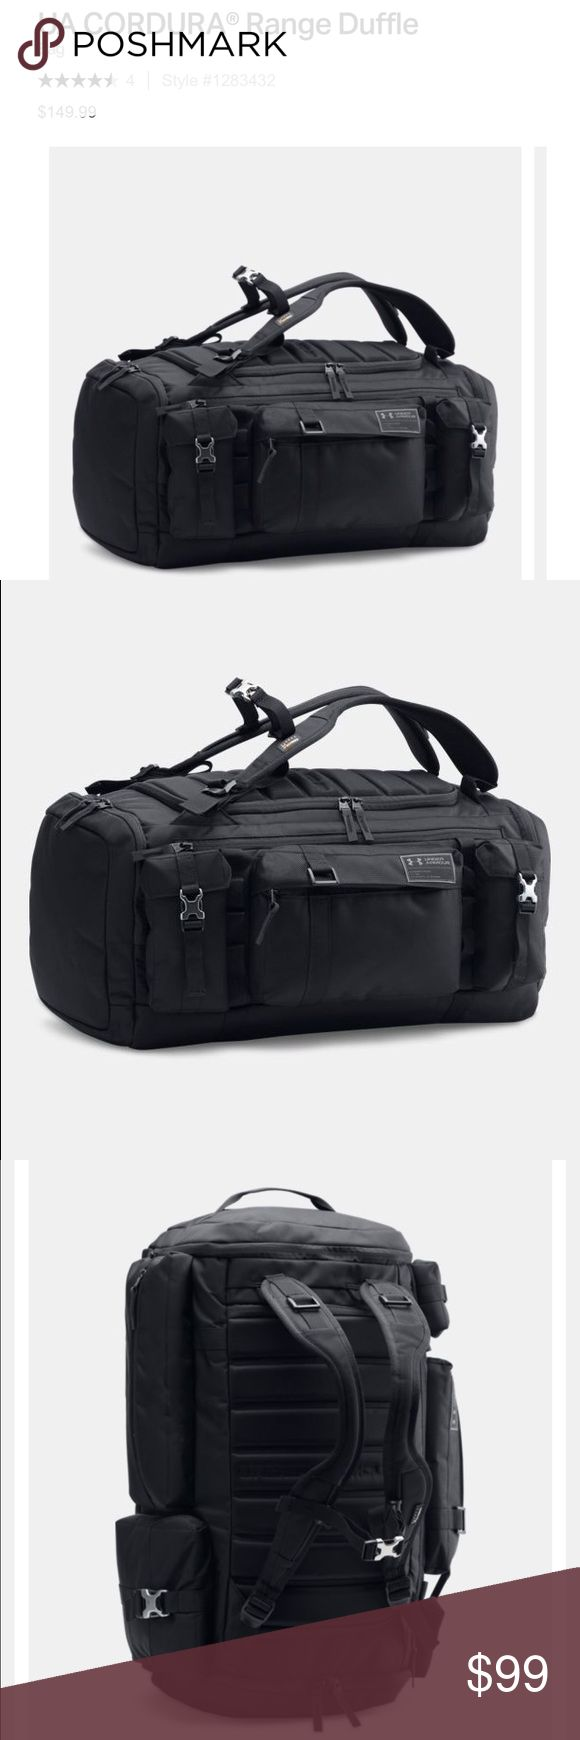 Under Armour Black Cordura Duffle Backpack Bag Under Armour Cordura Range black backpack duffle bag, brand new with tags! Under Armour Bags